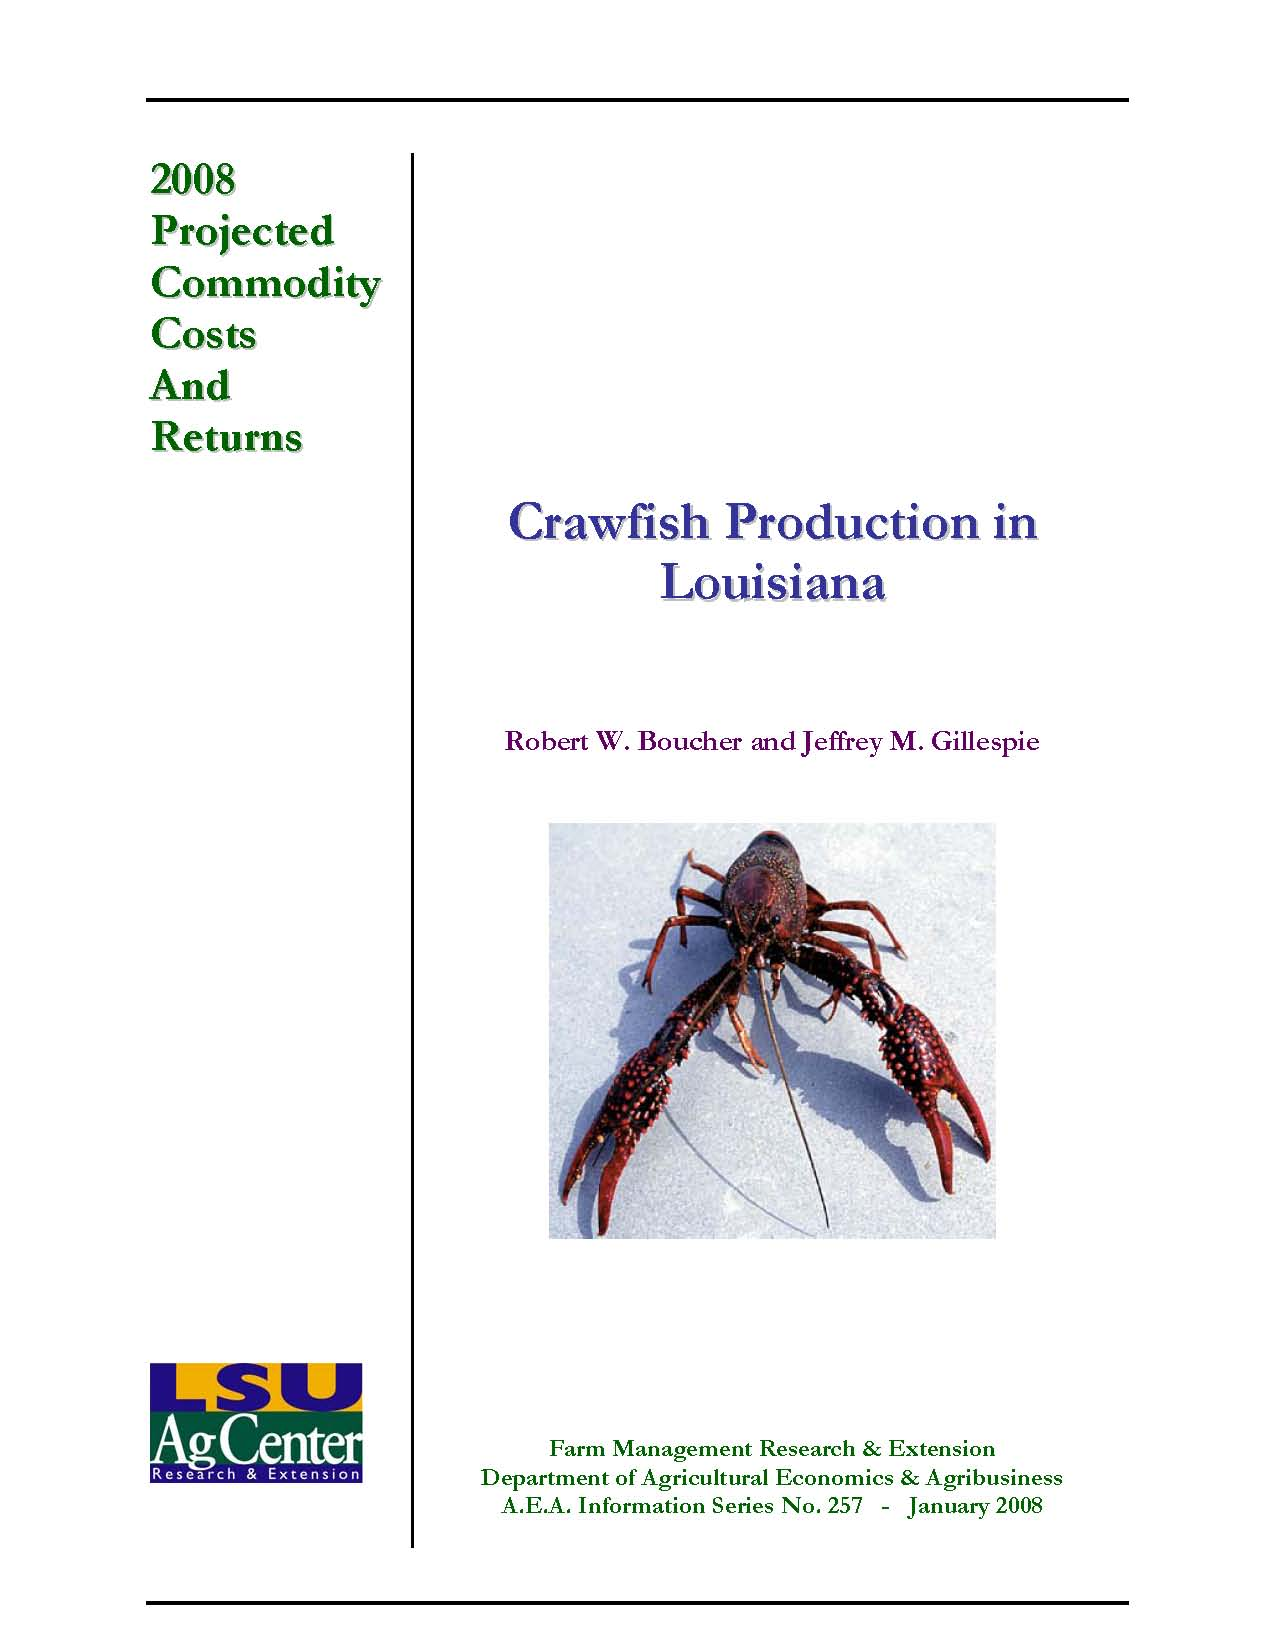 2008 Crawfish Budgets